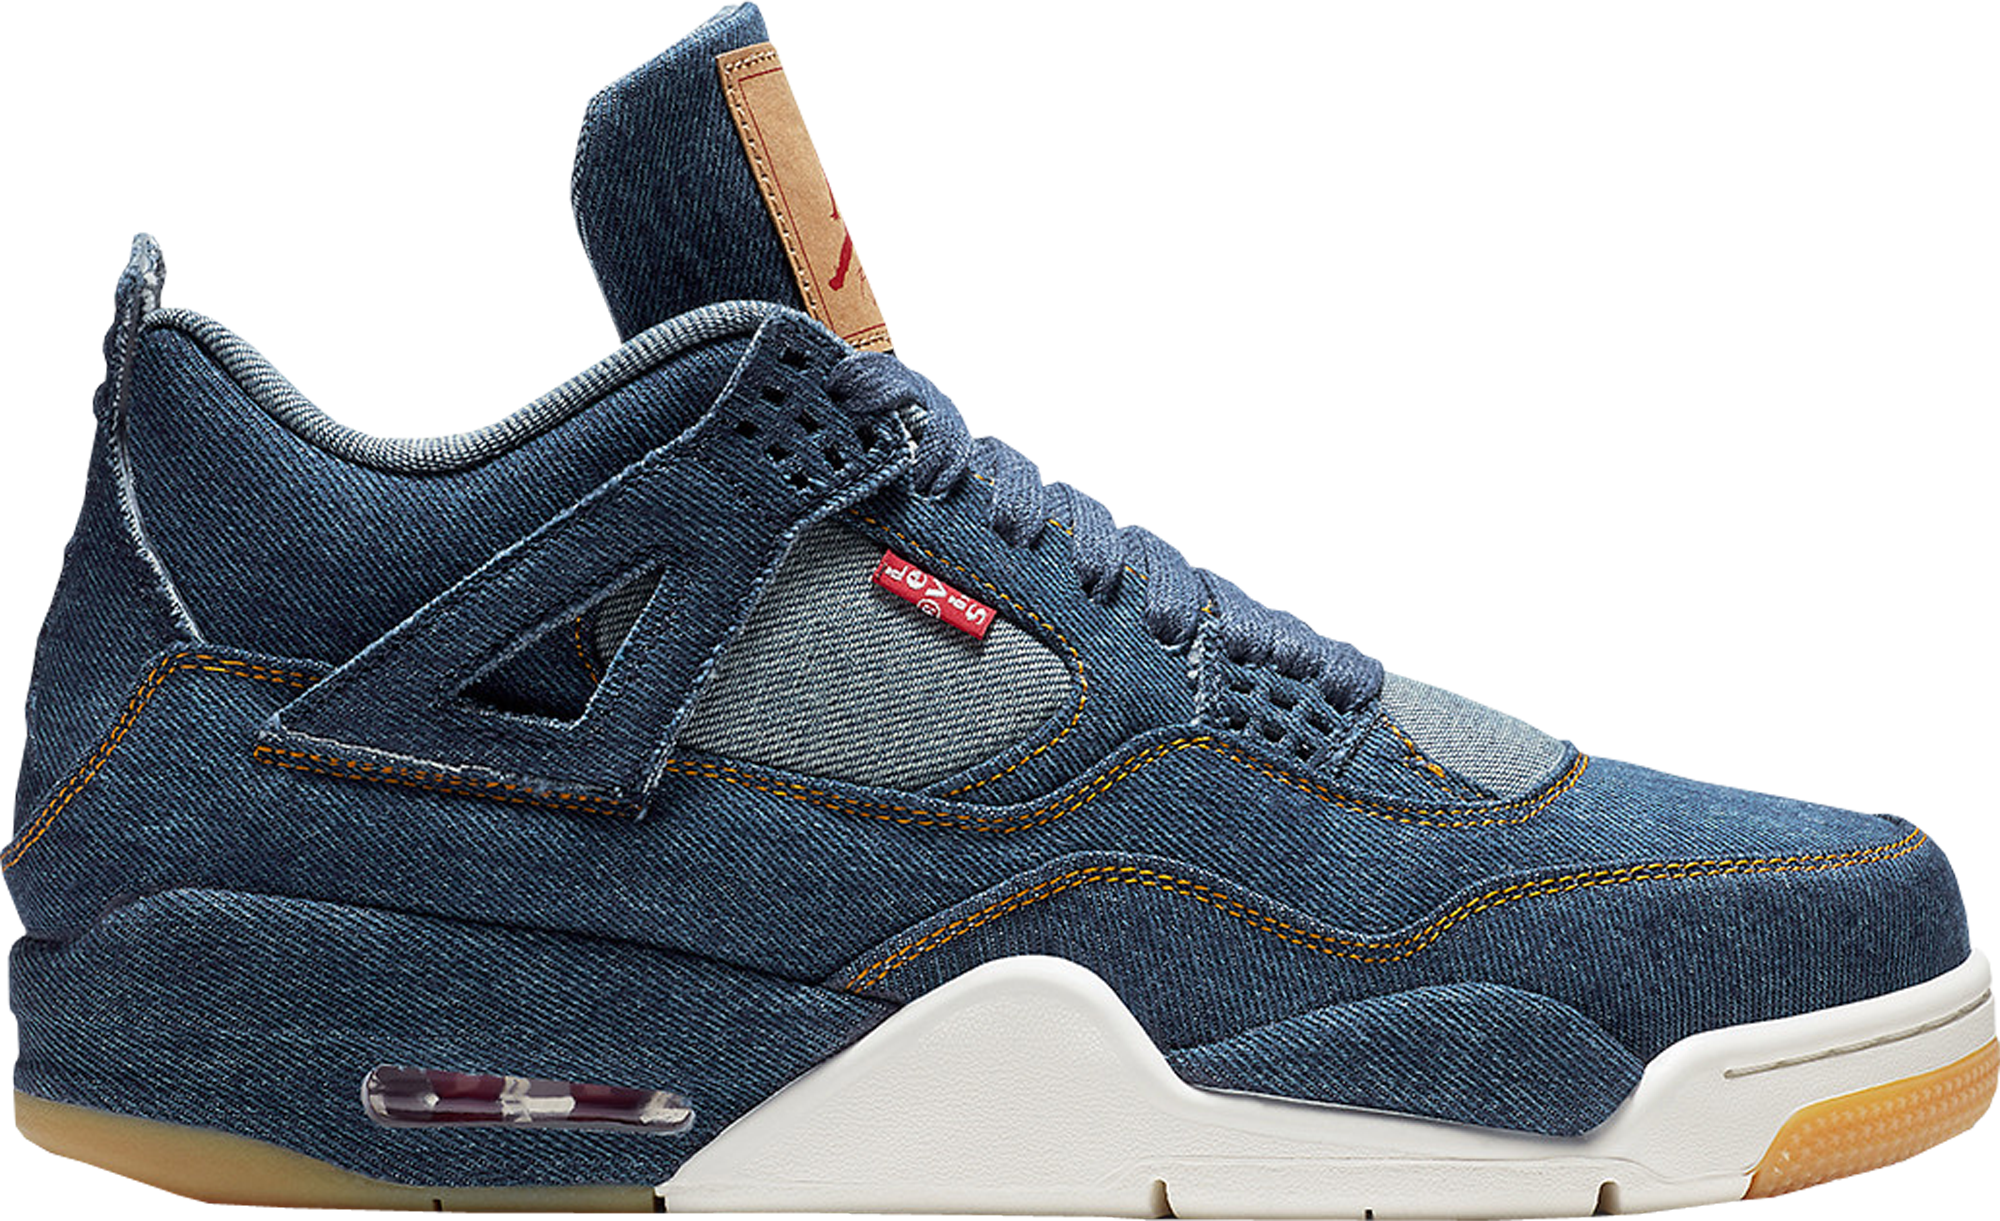 Levi's x Air Jordan 4 Retro Denim